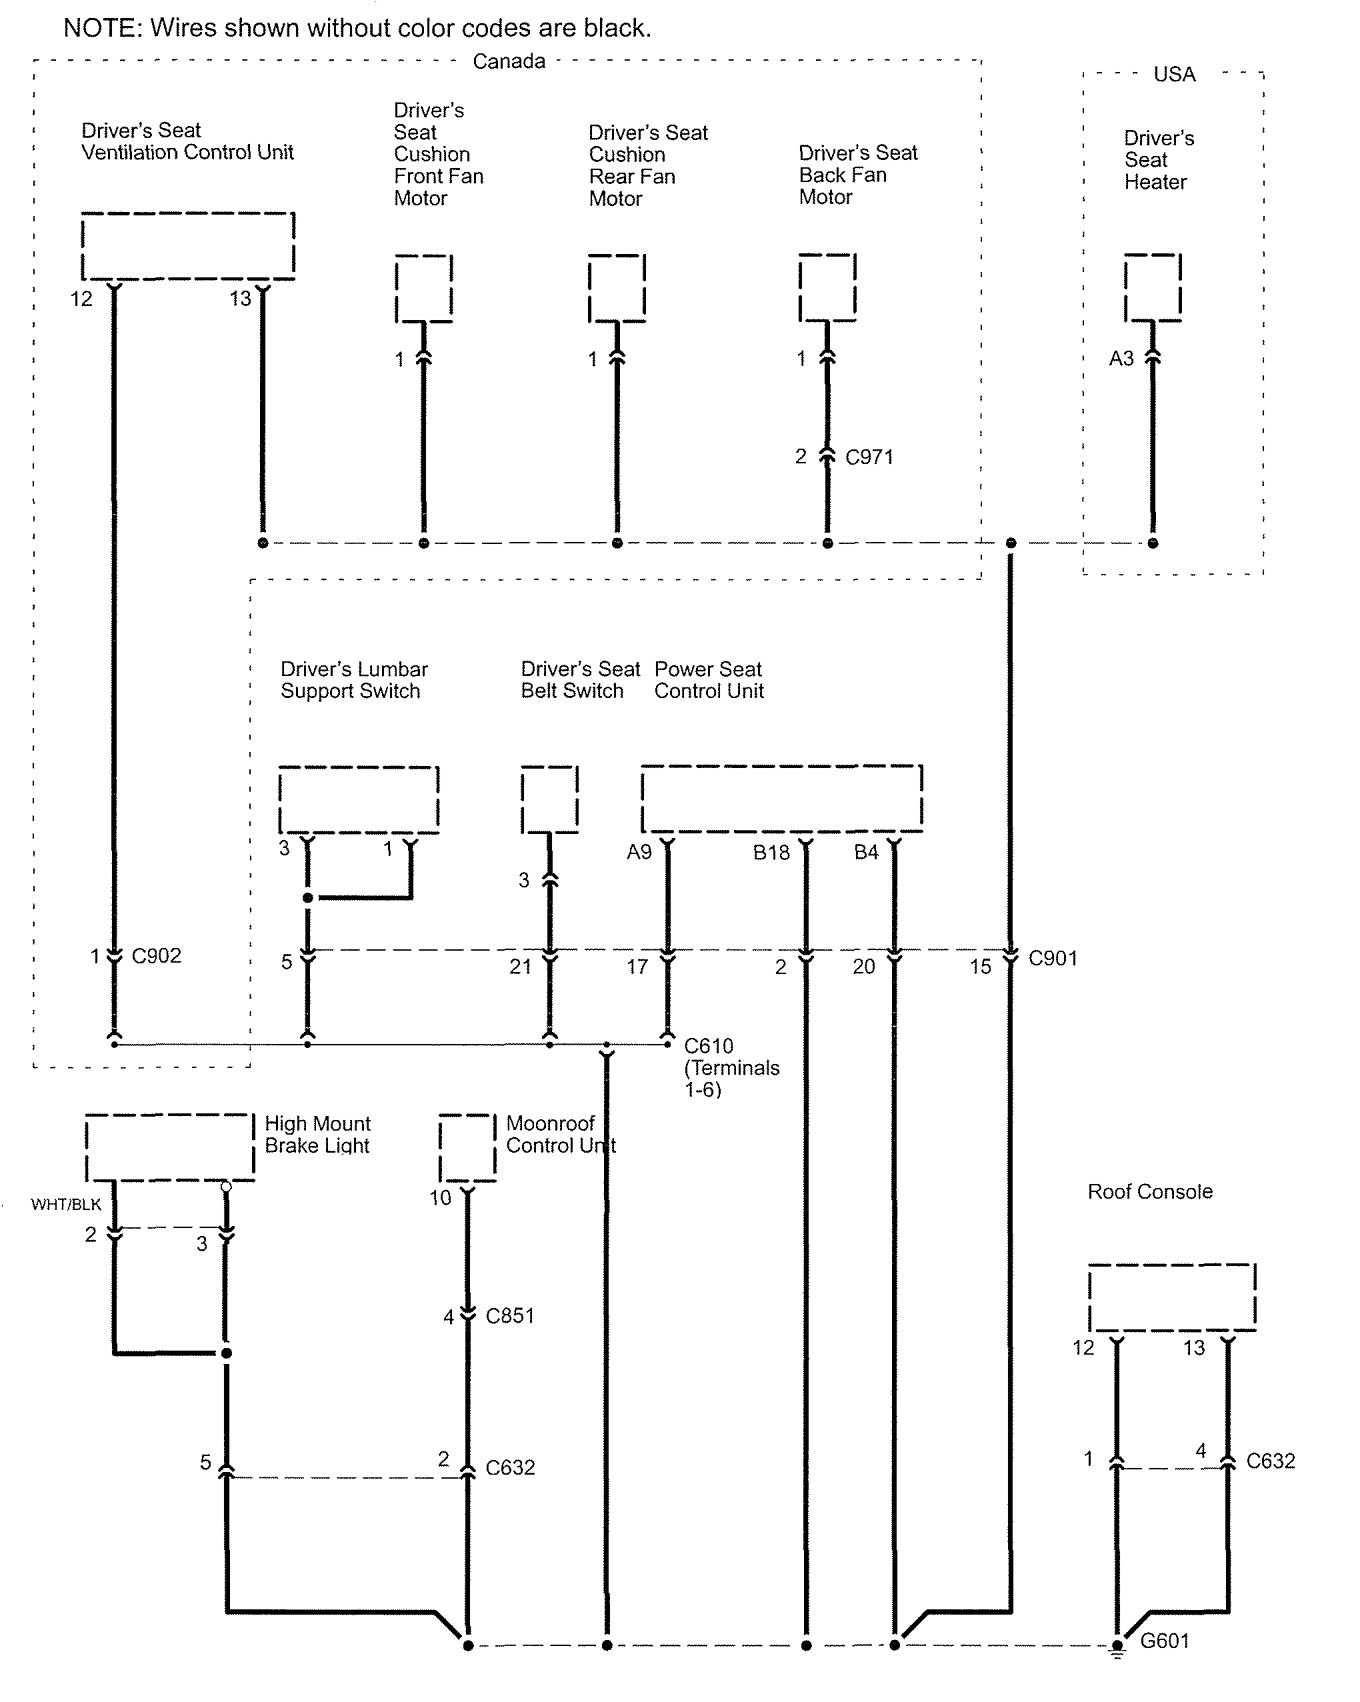 avalon light wiring schematic - dolgular, Wiring diagram